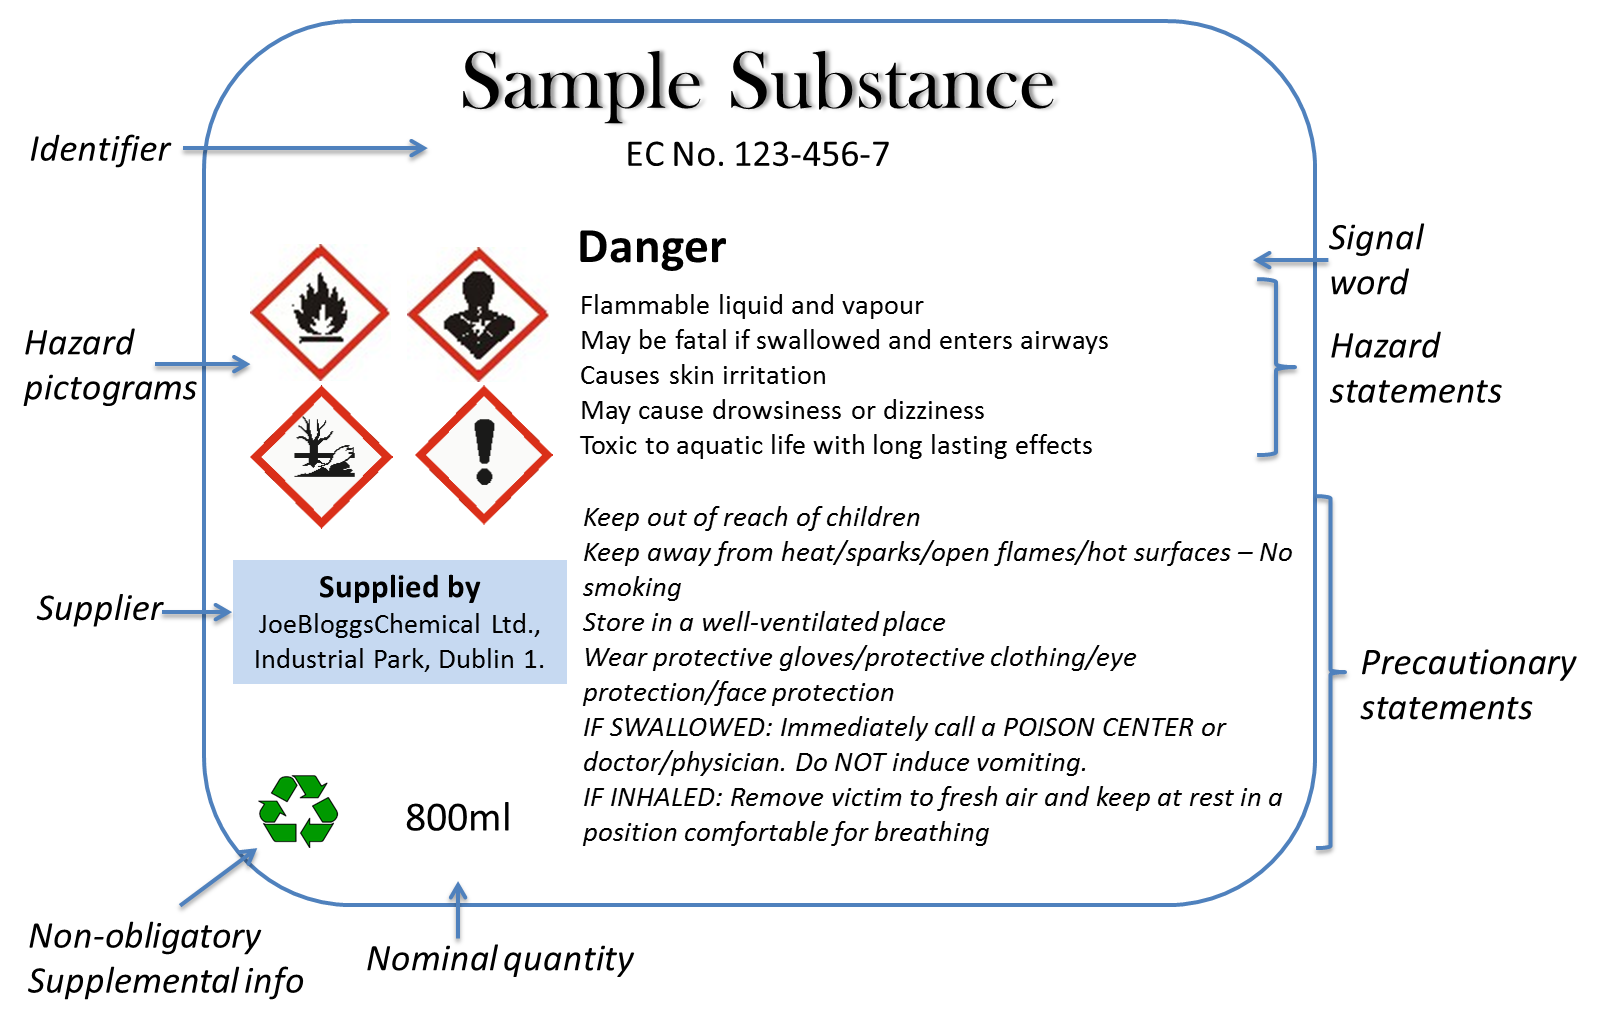 Information about hazards can be found on the container label and the safety data sheet (SDS)